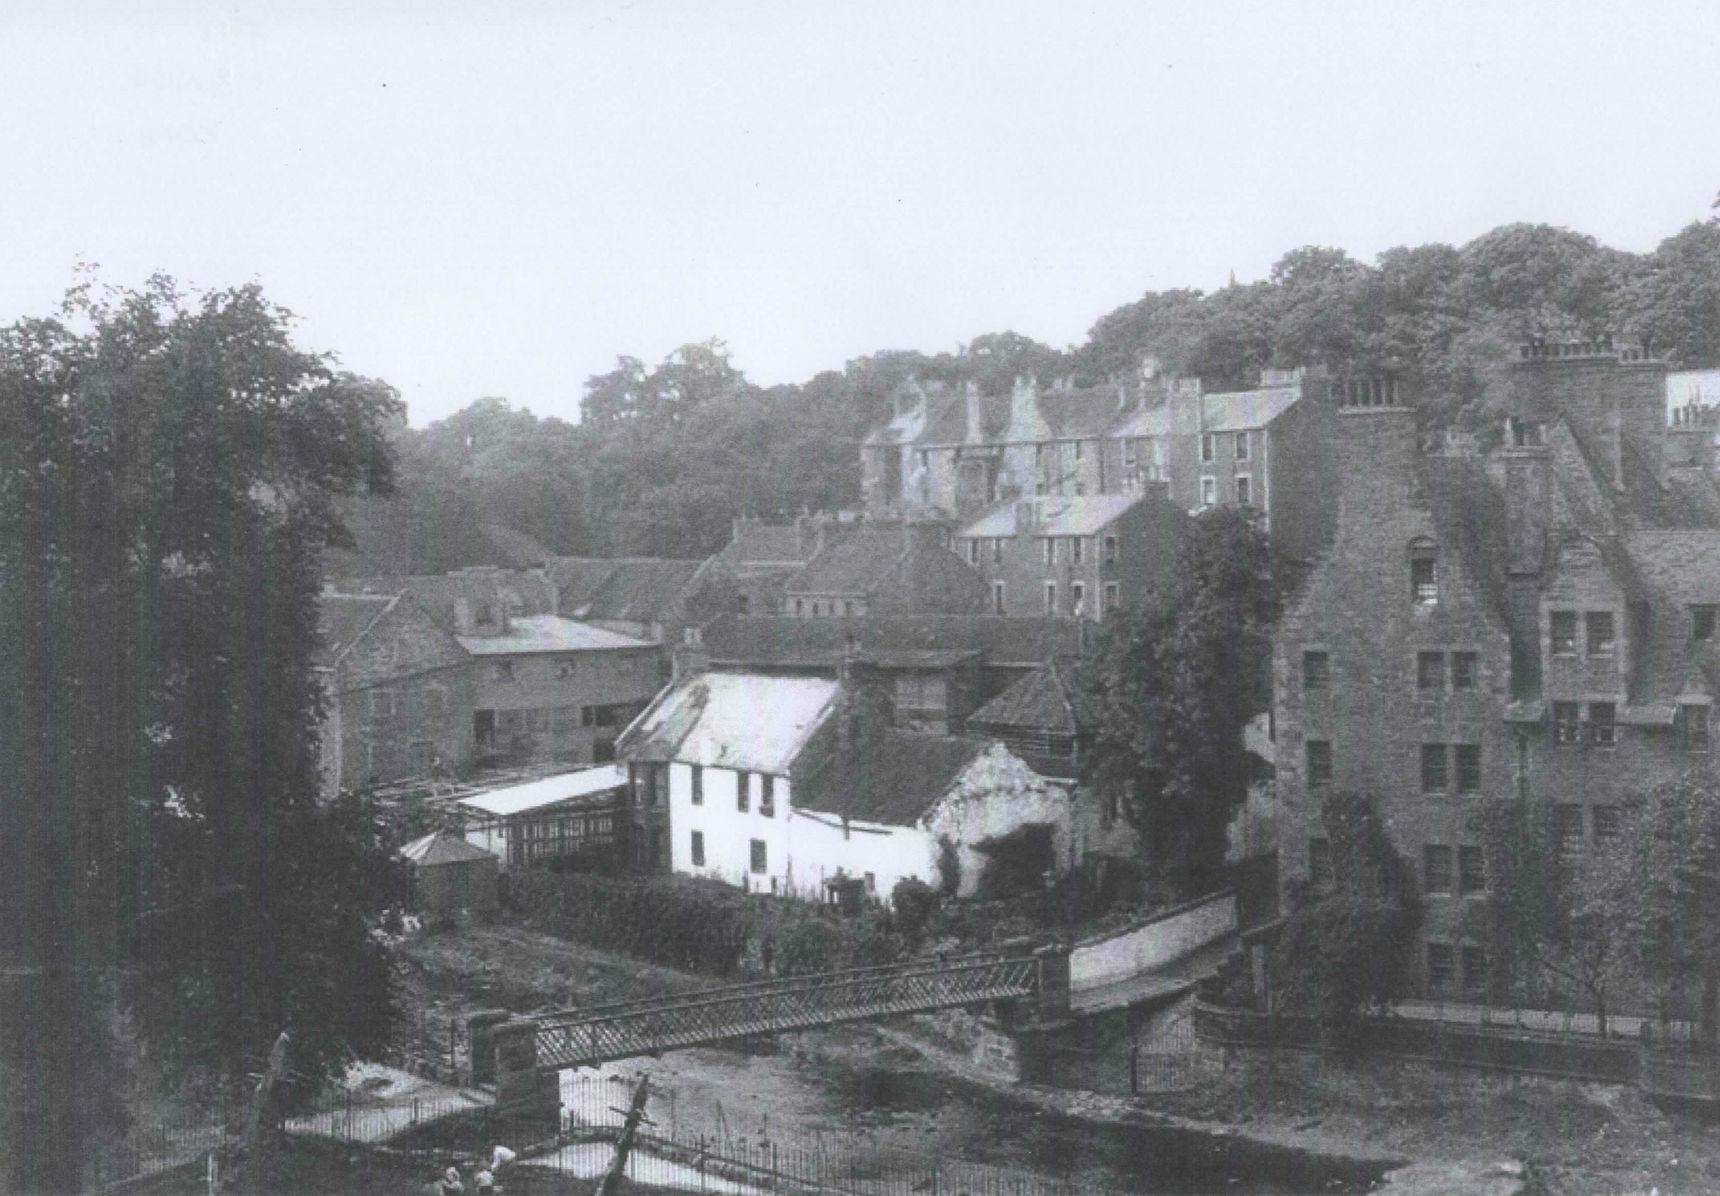 1943 - This photo shows the North West side of the Dean Village.